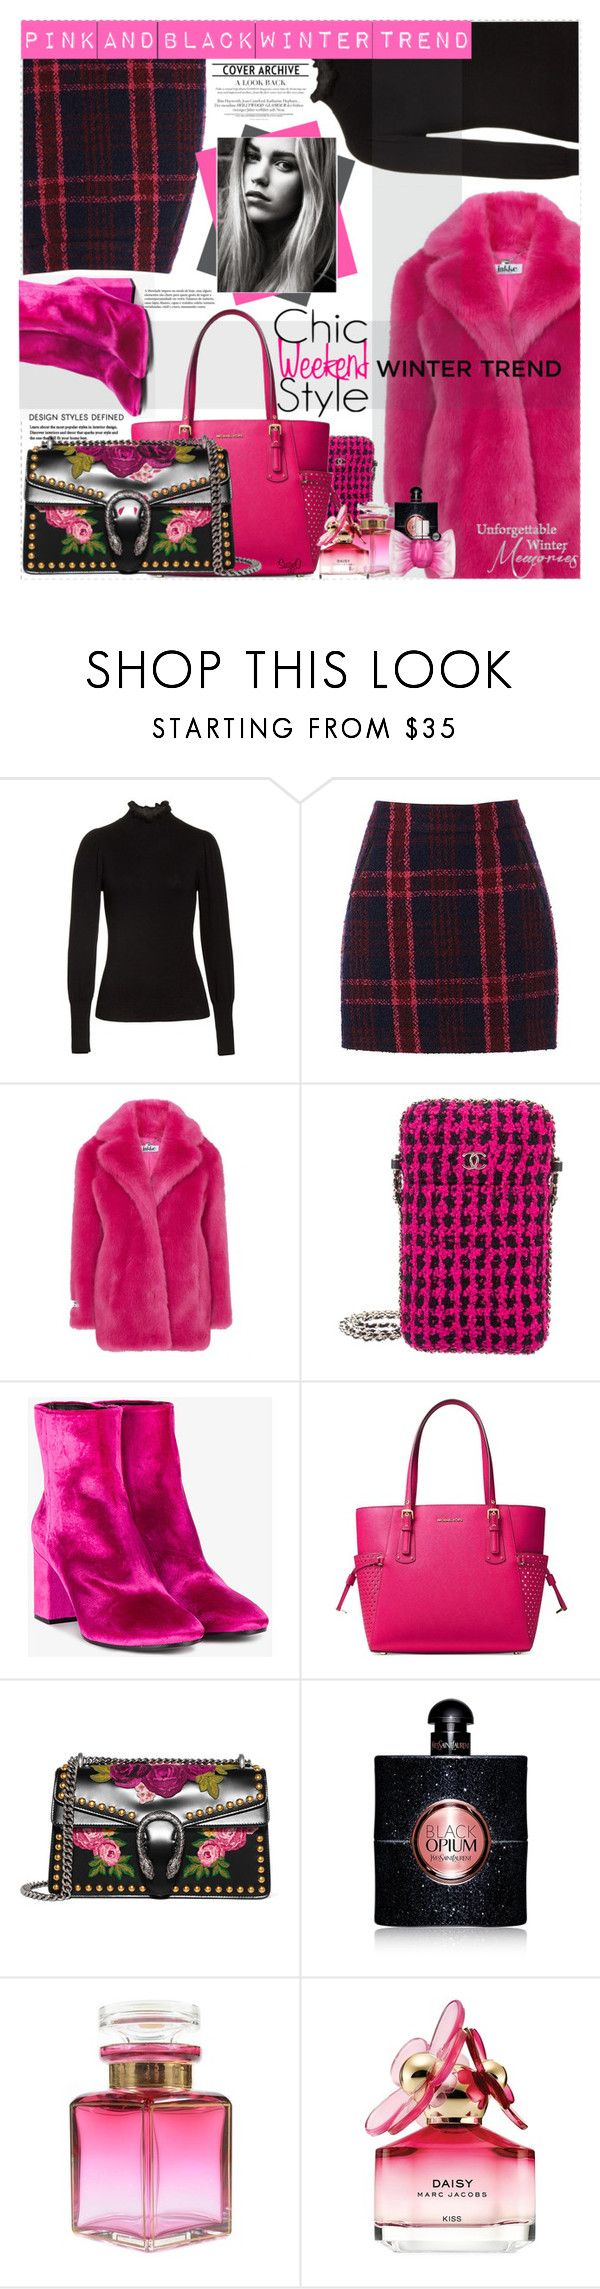 """""""HOT PINK AND BLACK: Winter Trend"""" by polyvore-suzyq ❤ liked on Polyvore featuring Rebecca Taylor, Oasis, Jakke, Chanel, Balenciaga, MICHAEL Michael Kors, Gucci, Yves Saint Laurent, Marc Jacobs and Viktor & Rolf"""